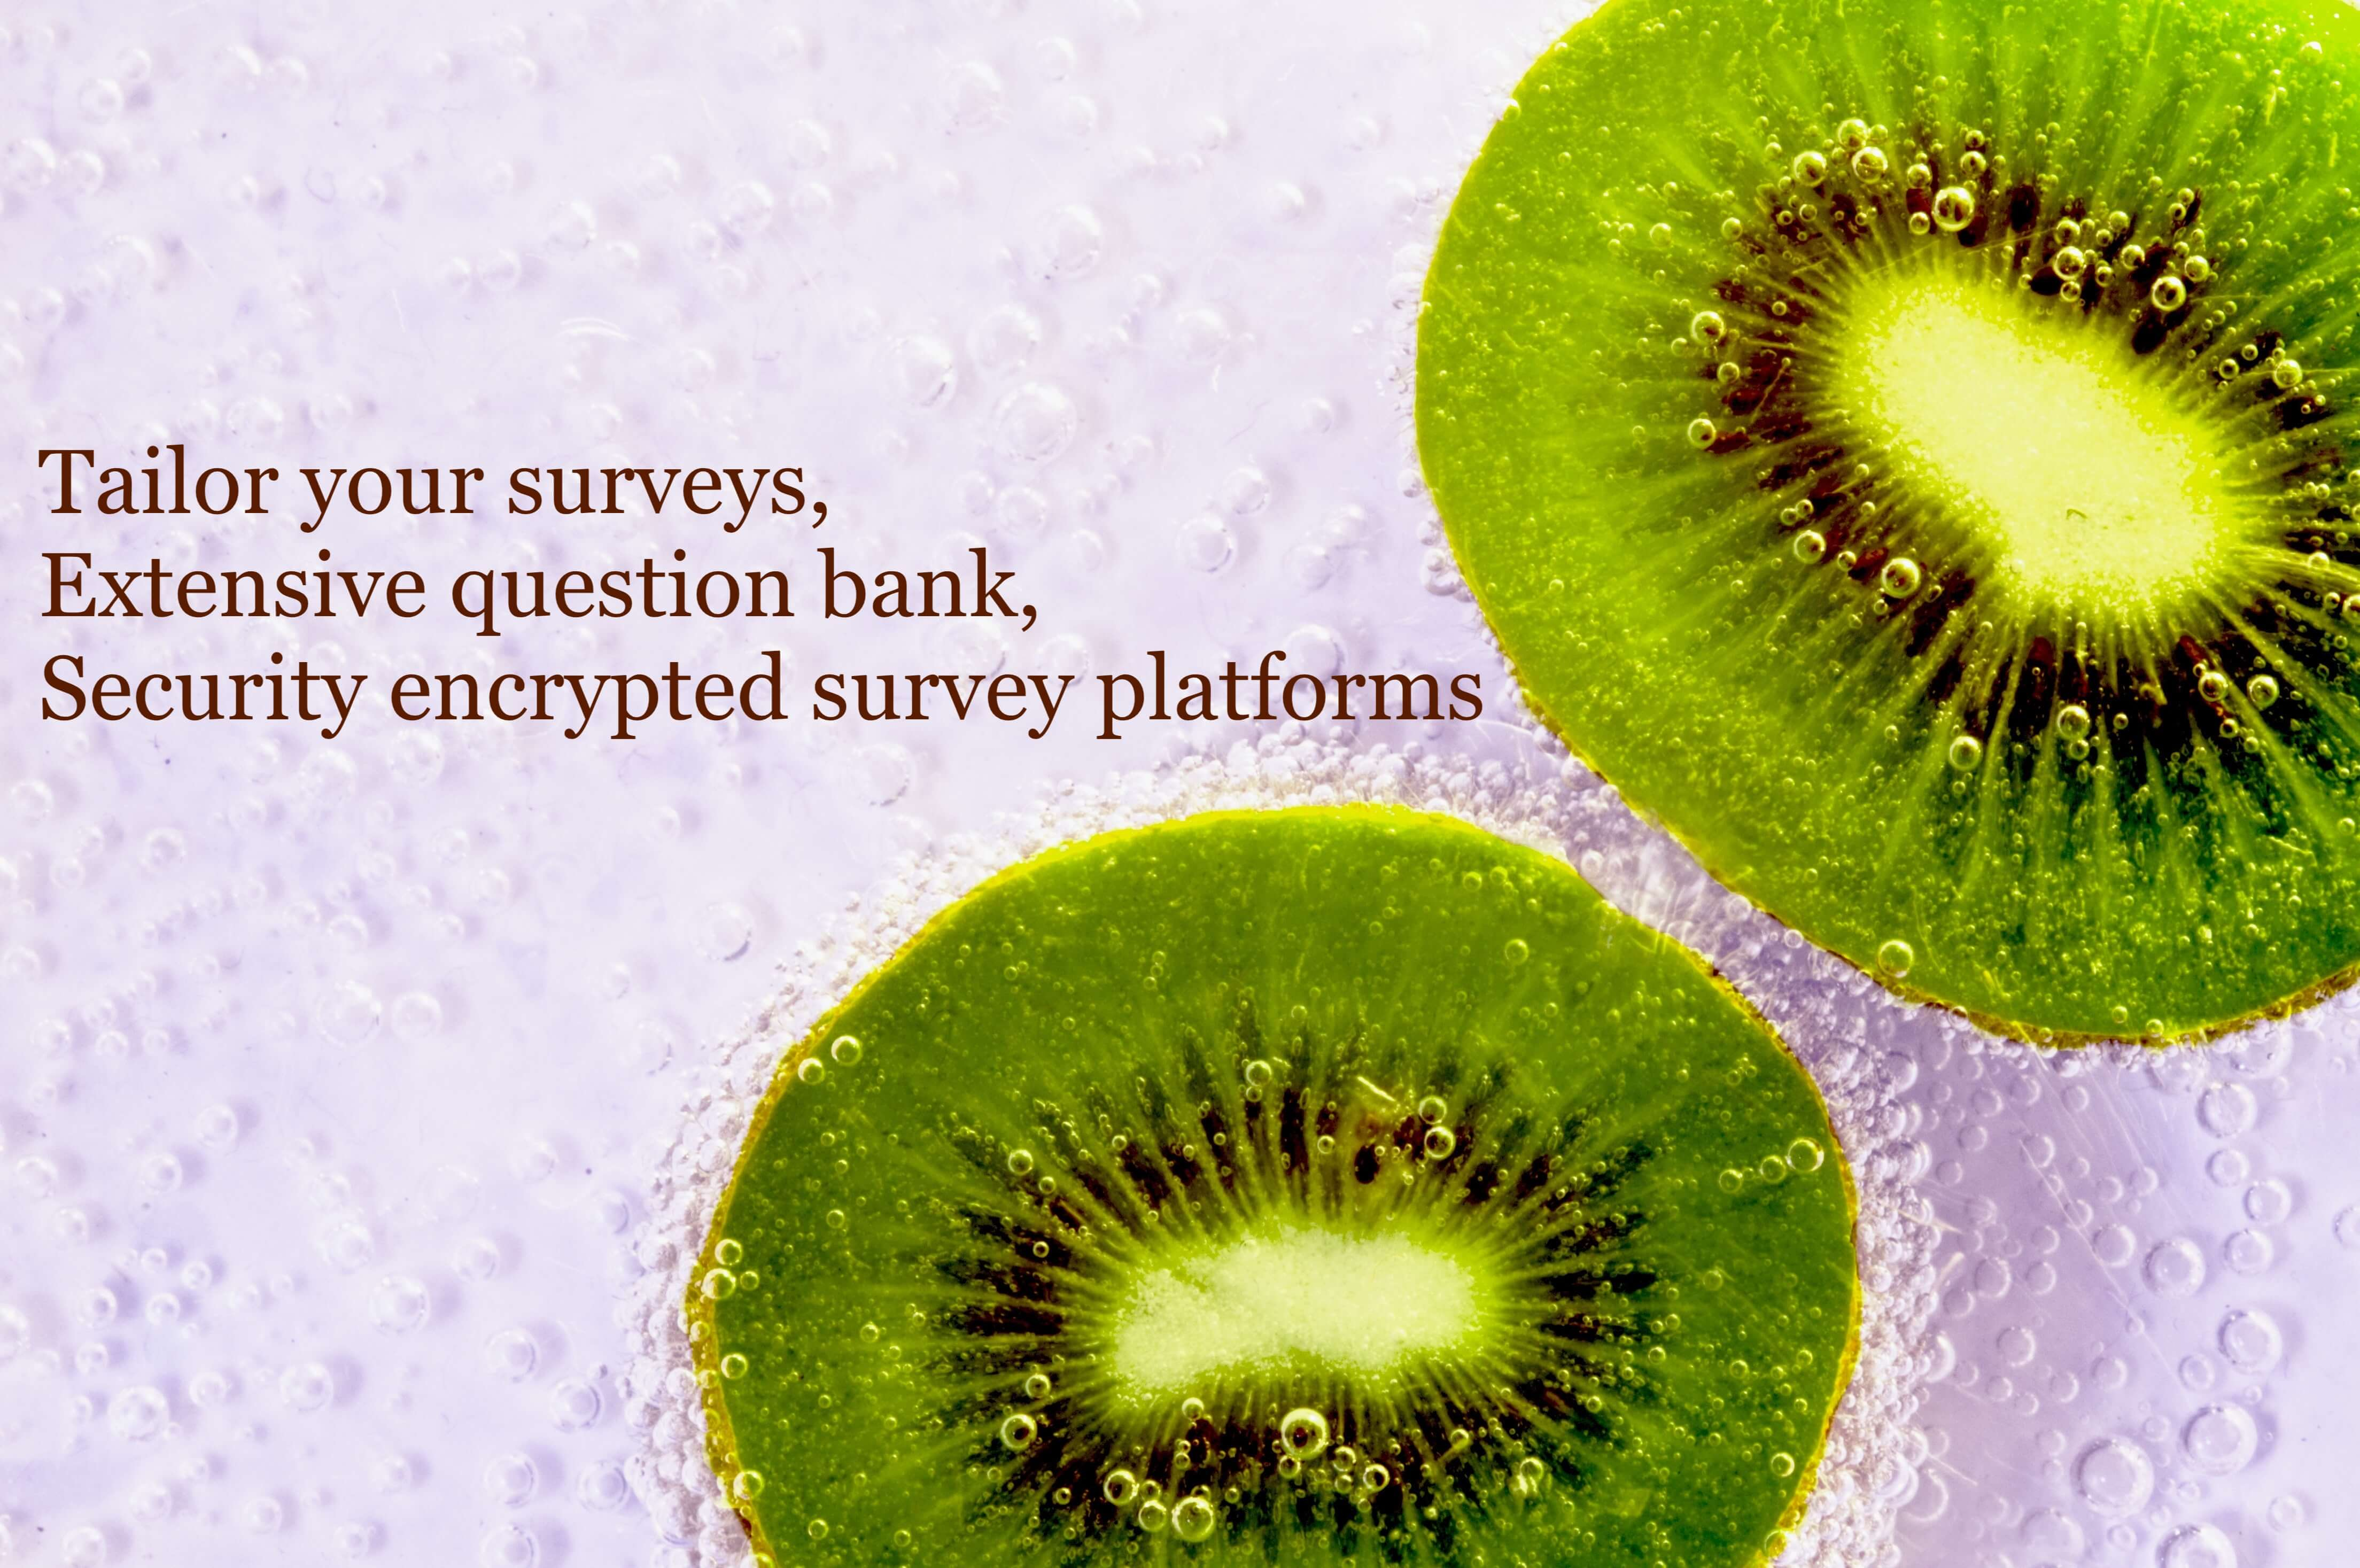 If you want your CRM software to launch any kind of online survey project, then SurveyMonkey can help you.